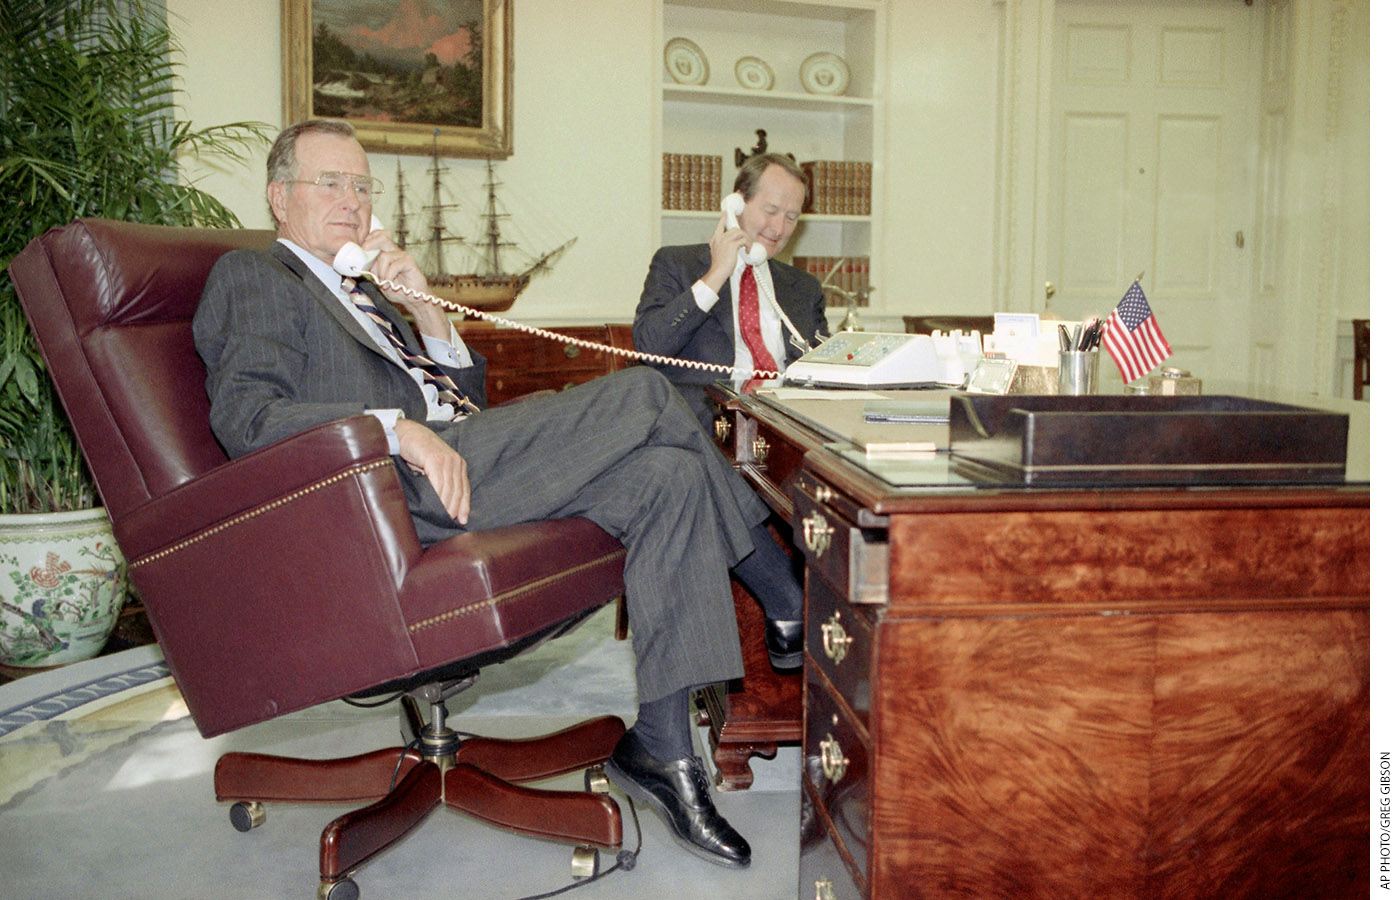 President George H.W. Bush and Alexander speak to the governors of Maine and Maryland on the phone about the American 2000 program on September 4, 1991.